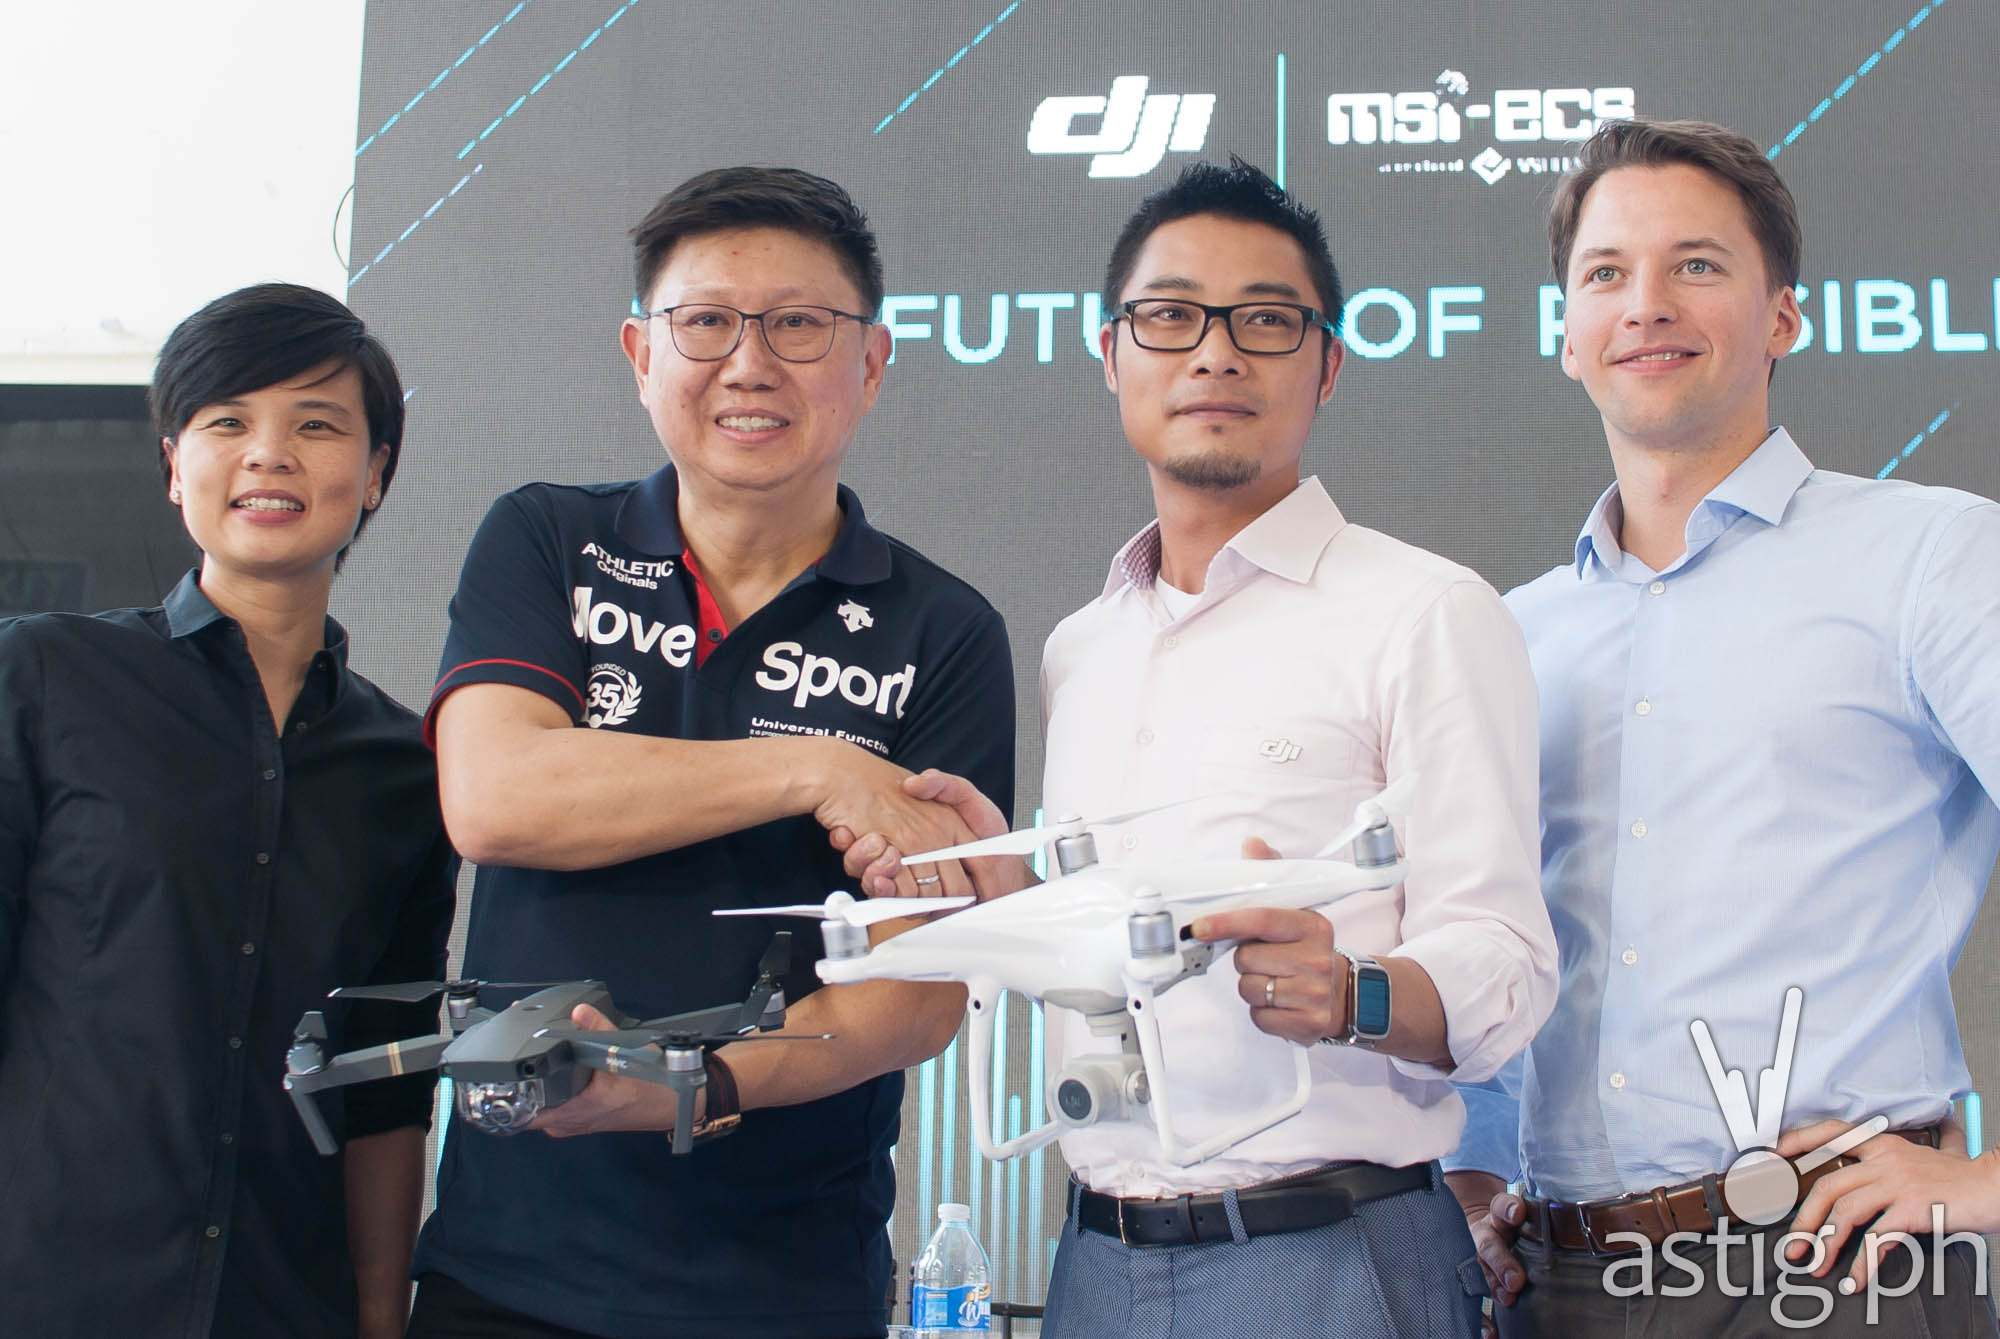 DJI chooses MSI-ECS as Philippine distributor